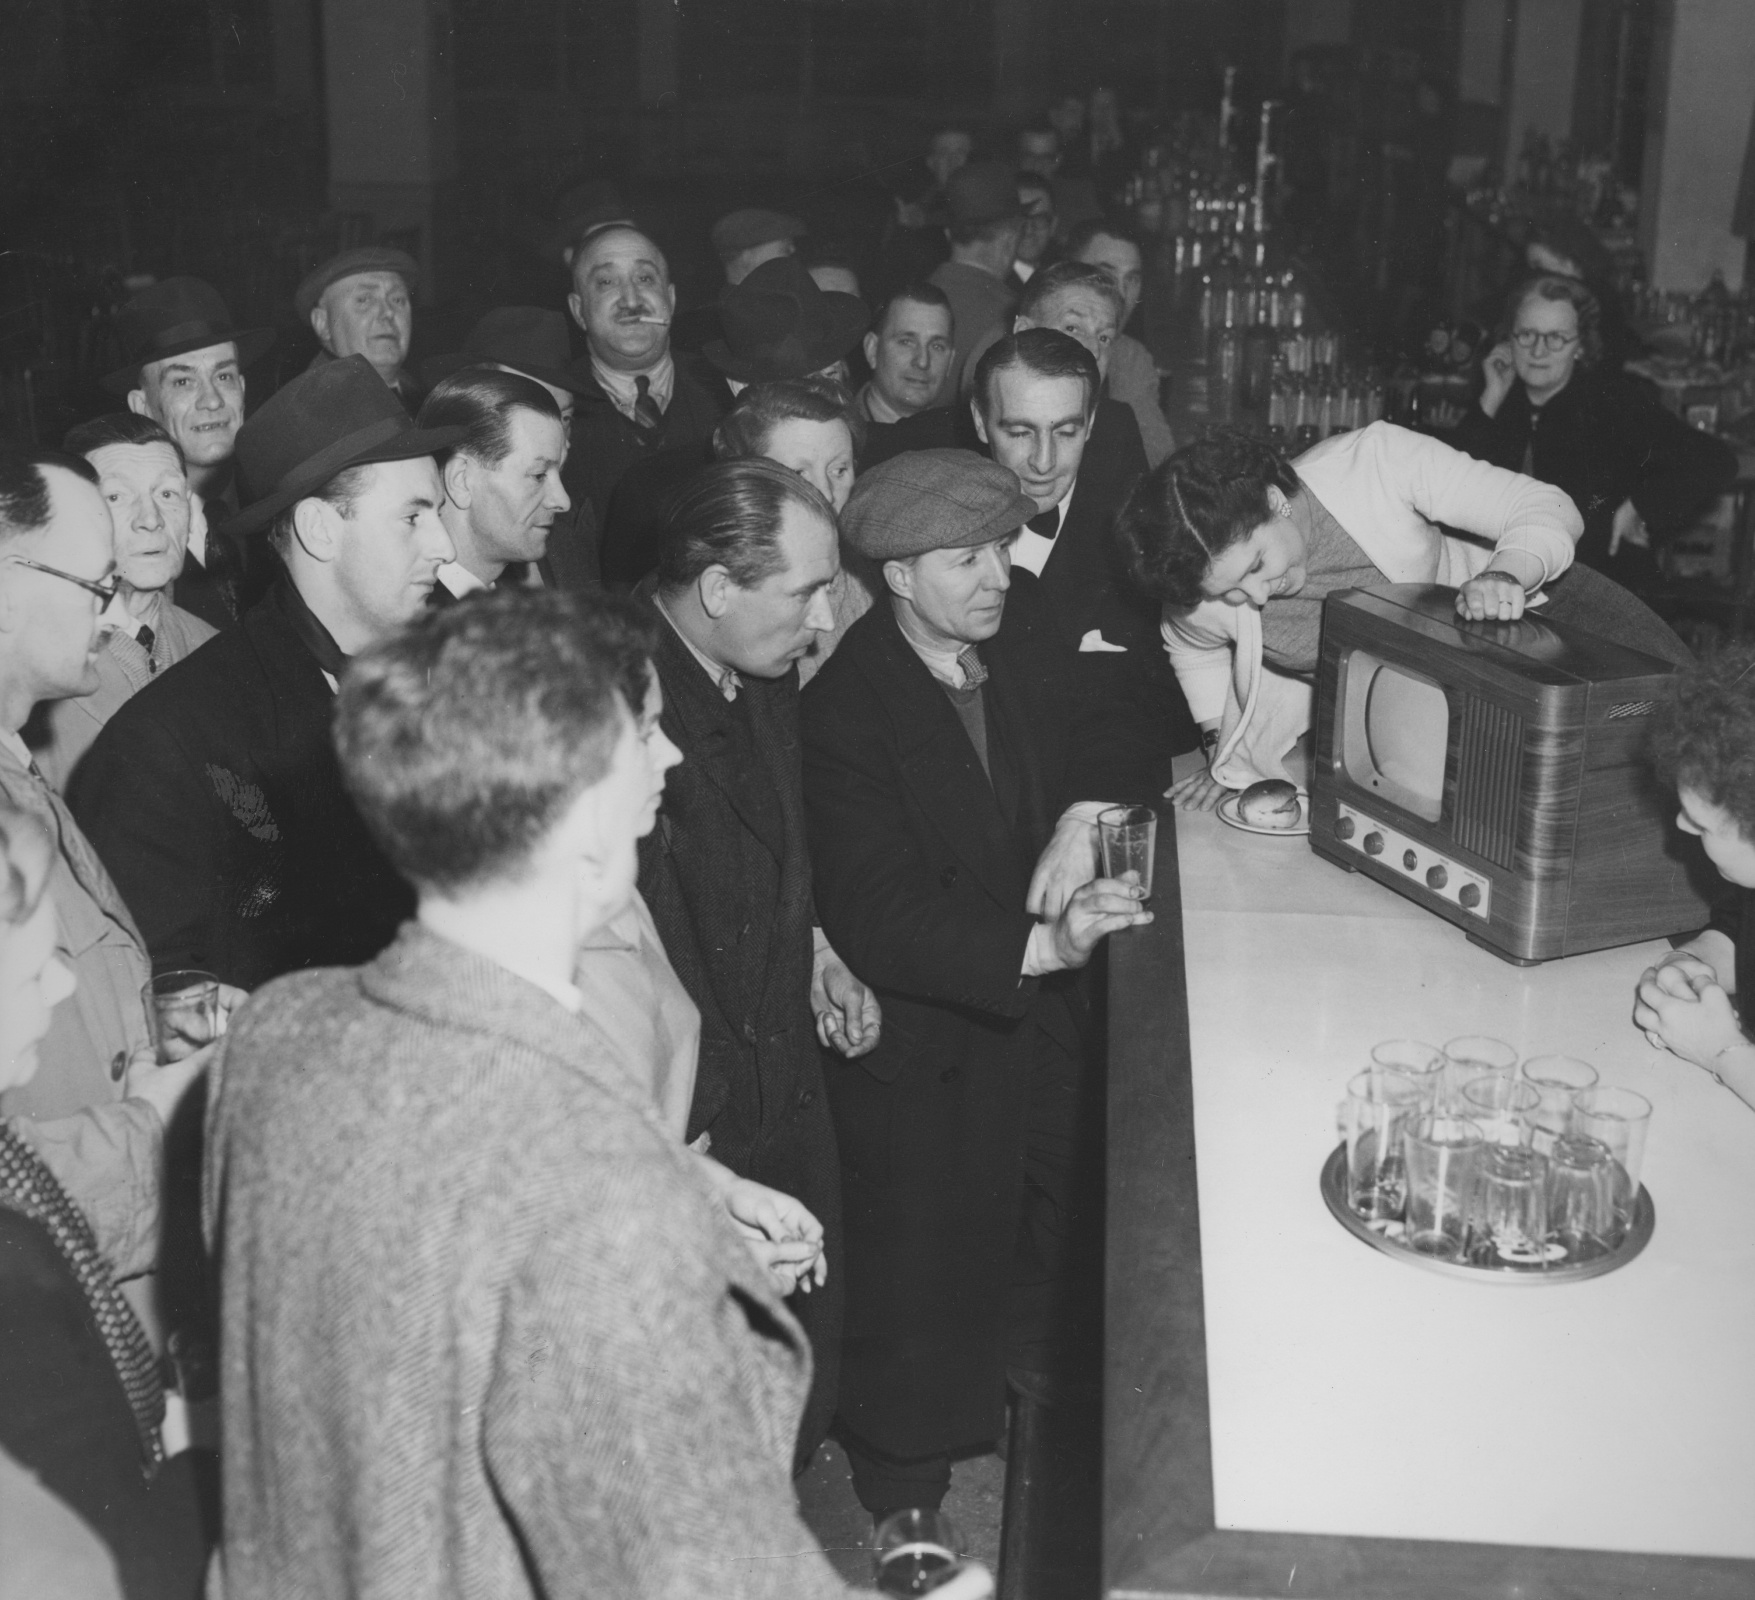 Boxing fans watch a televised fight between Albert Finch of Britain and Baby Day (Lewis Warren) of the USA, in a bar, UK, 7th February 1950. Day won on points.